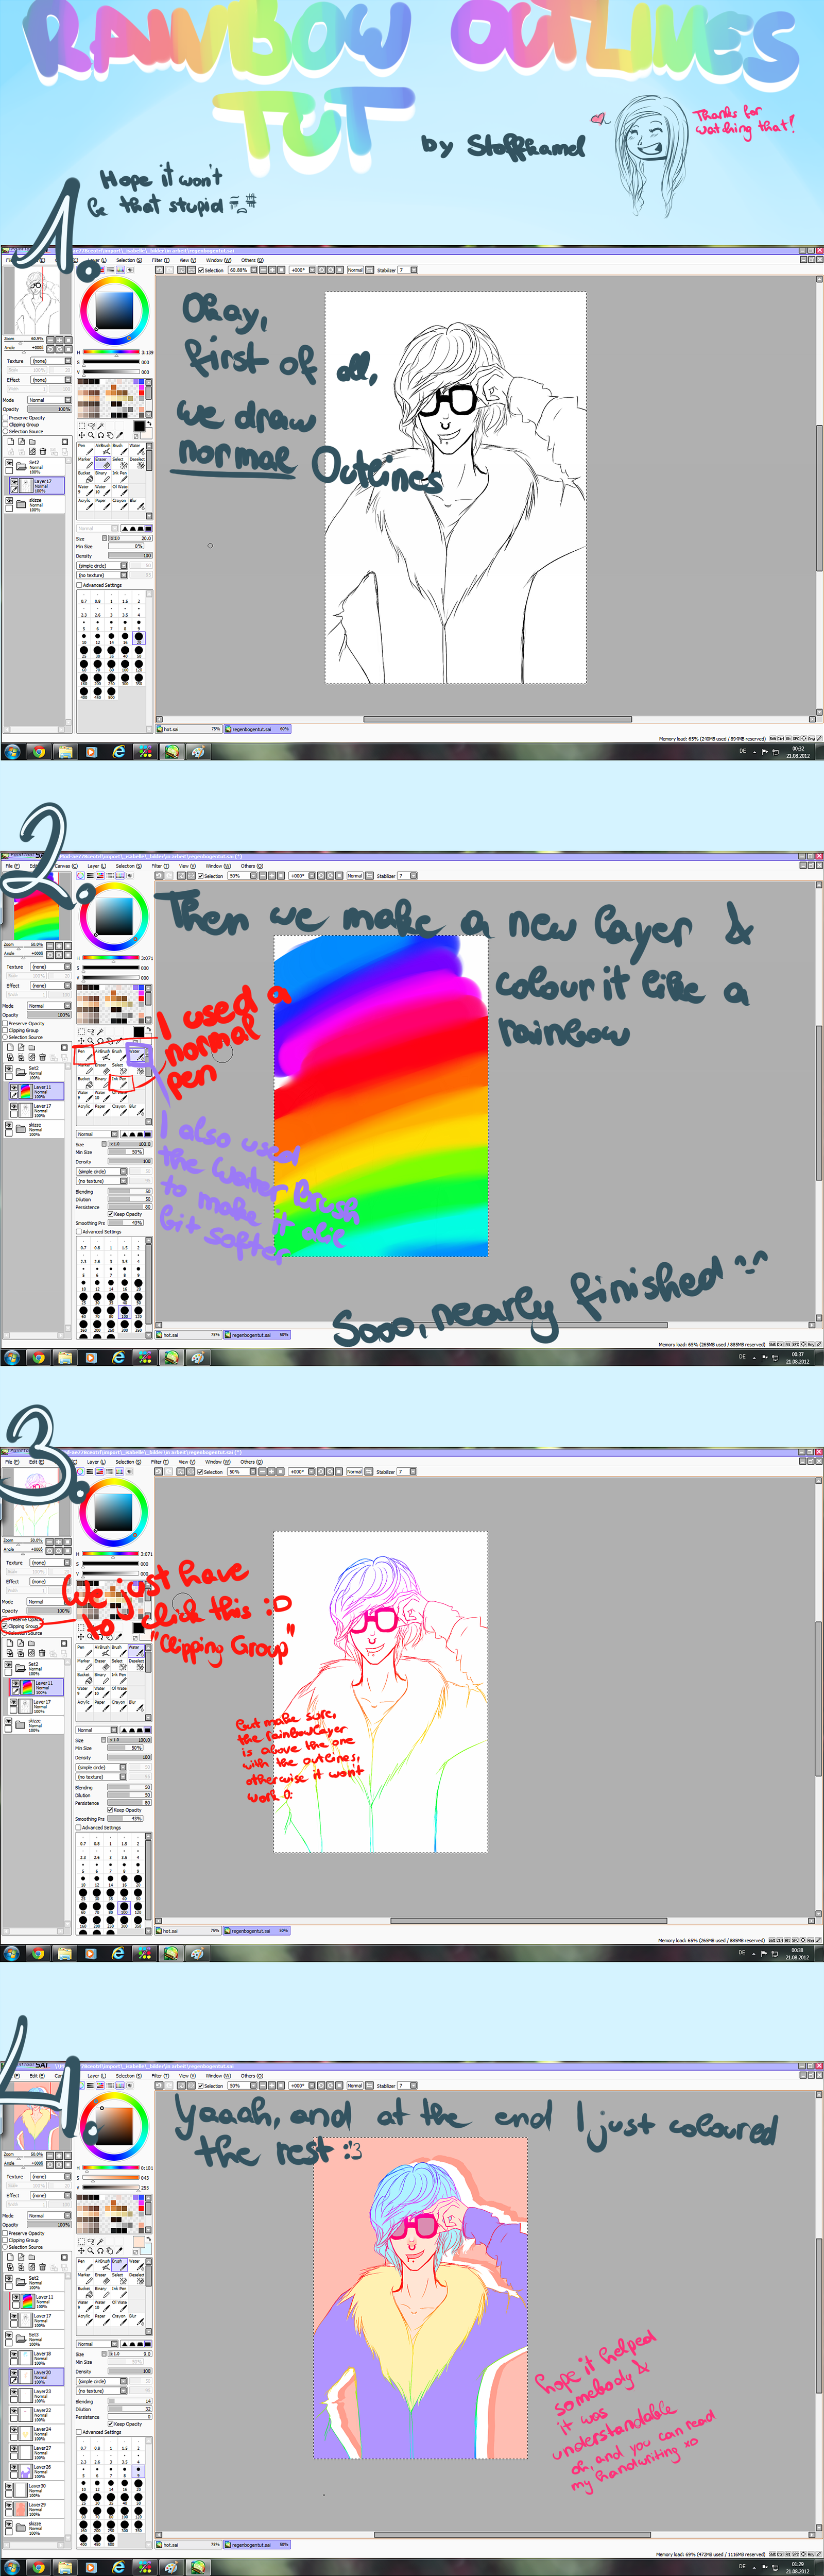 Rainbow-Outlines Tutorial by Stoffkamel